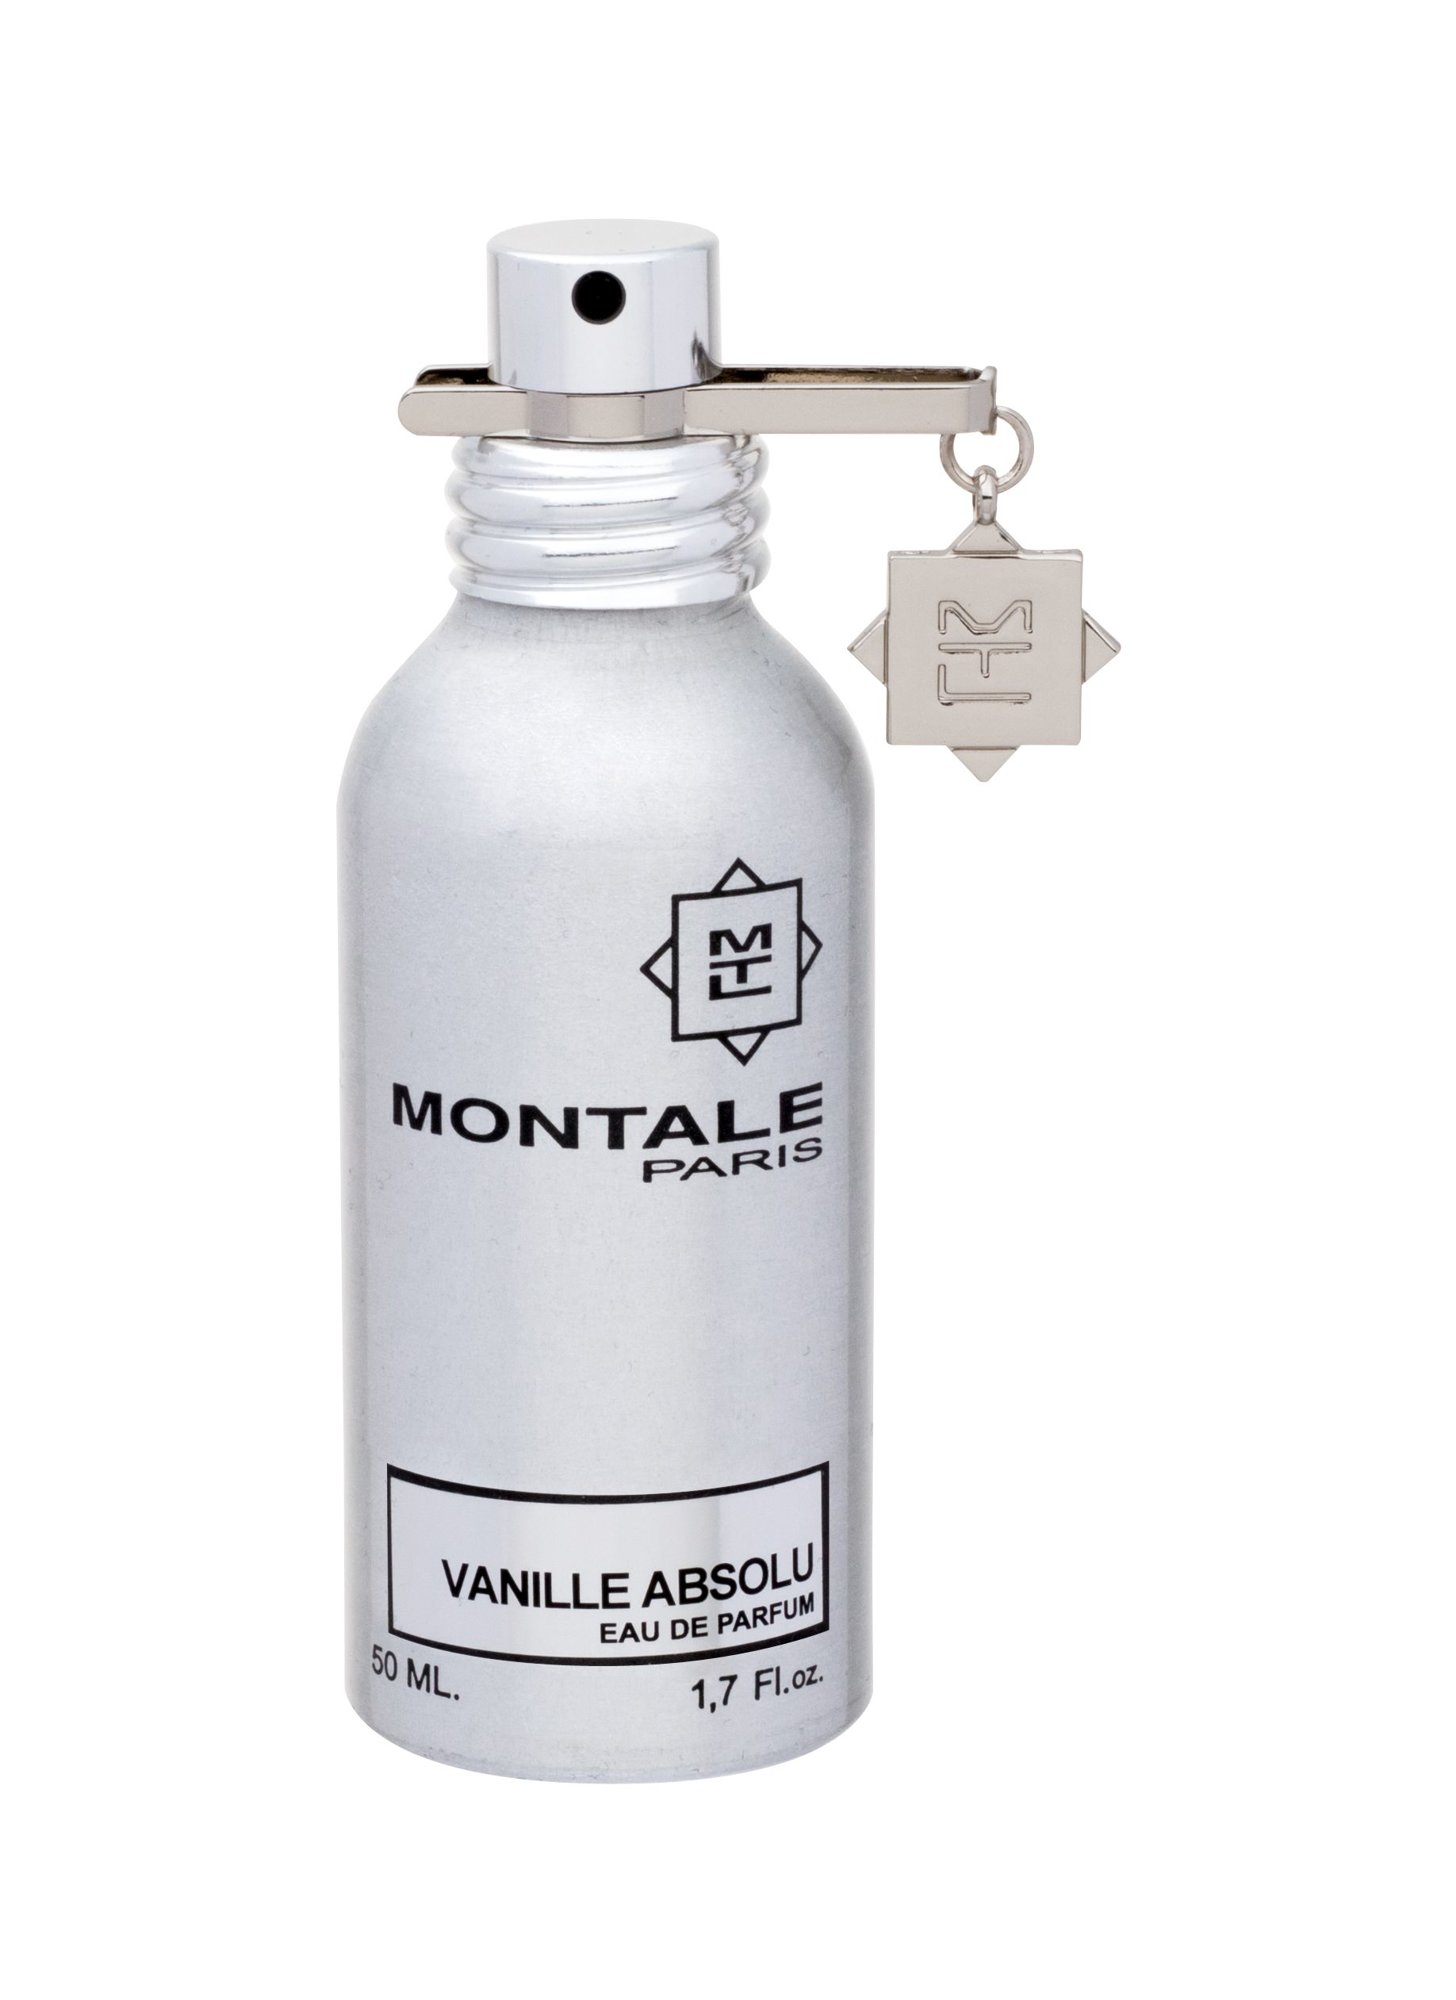 Montale Paris Vanille Absolu EDP 50ml